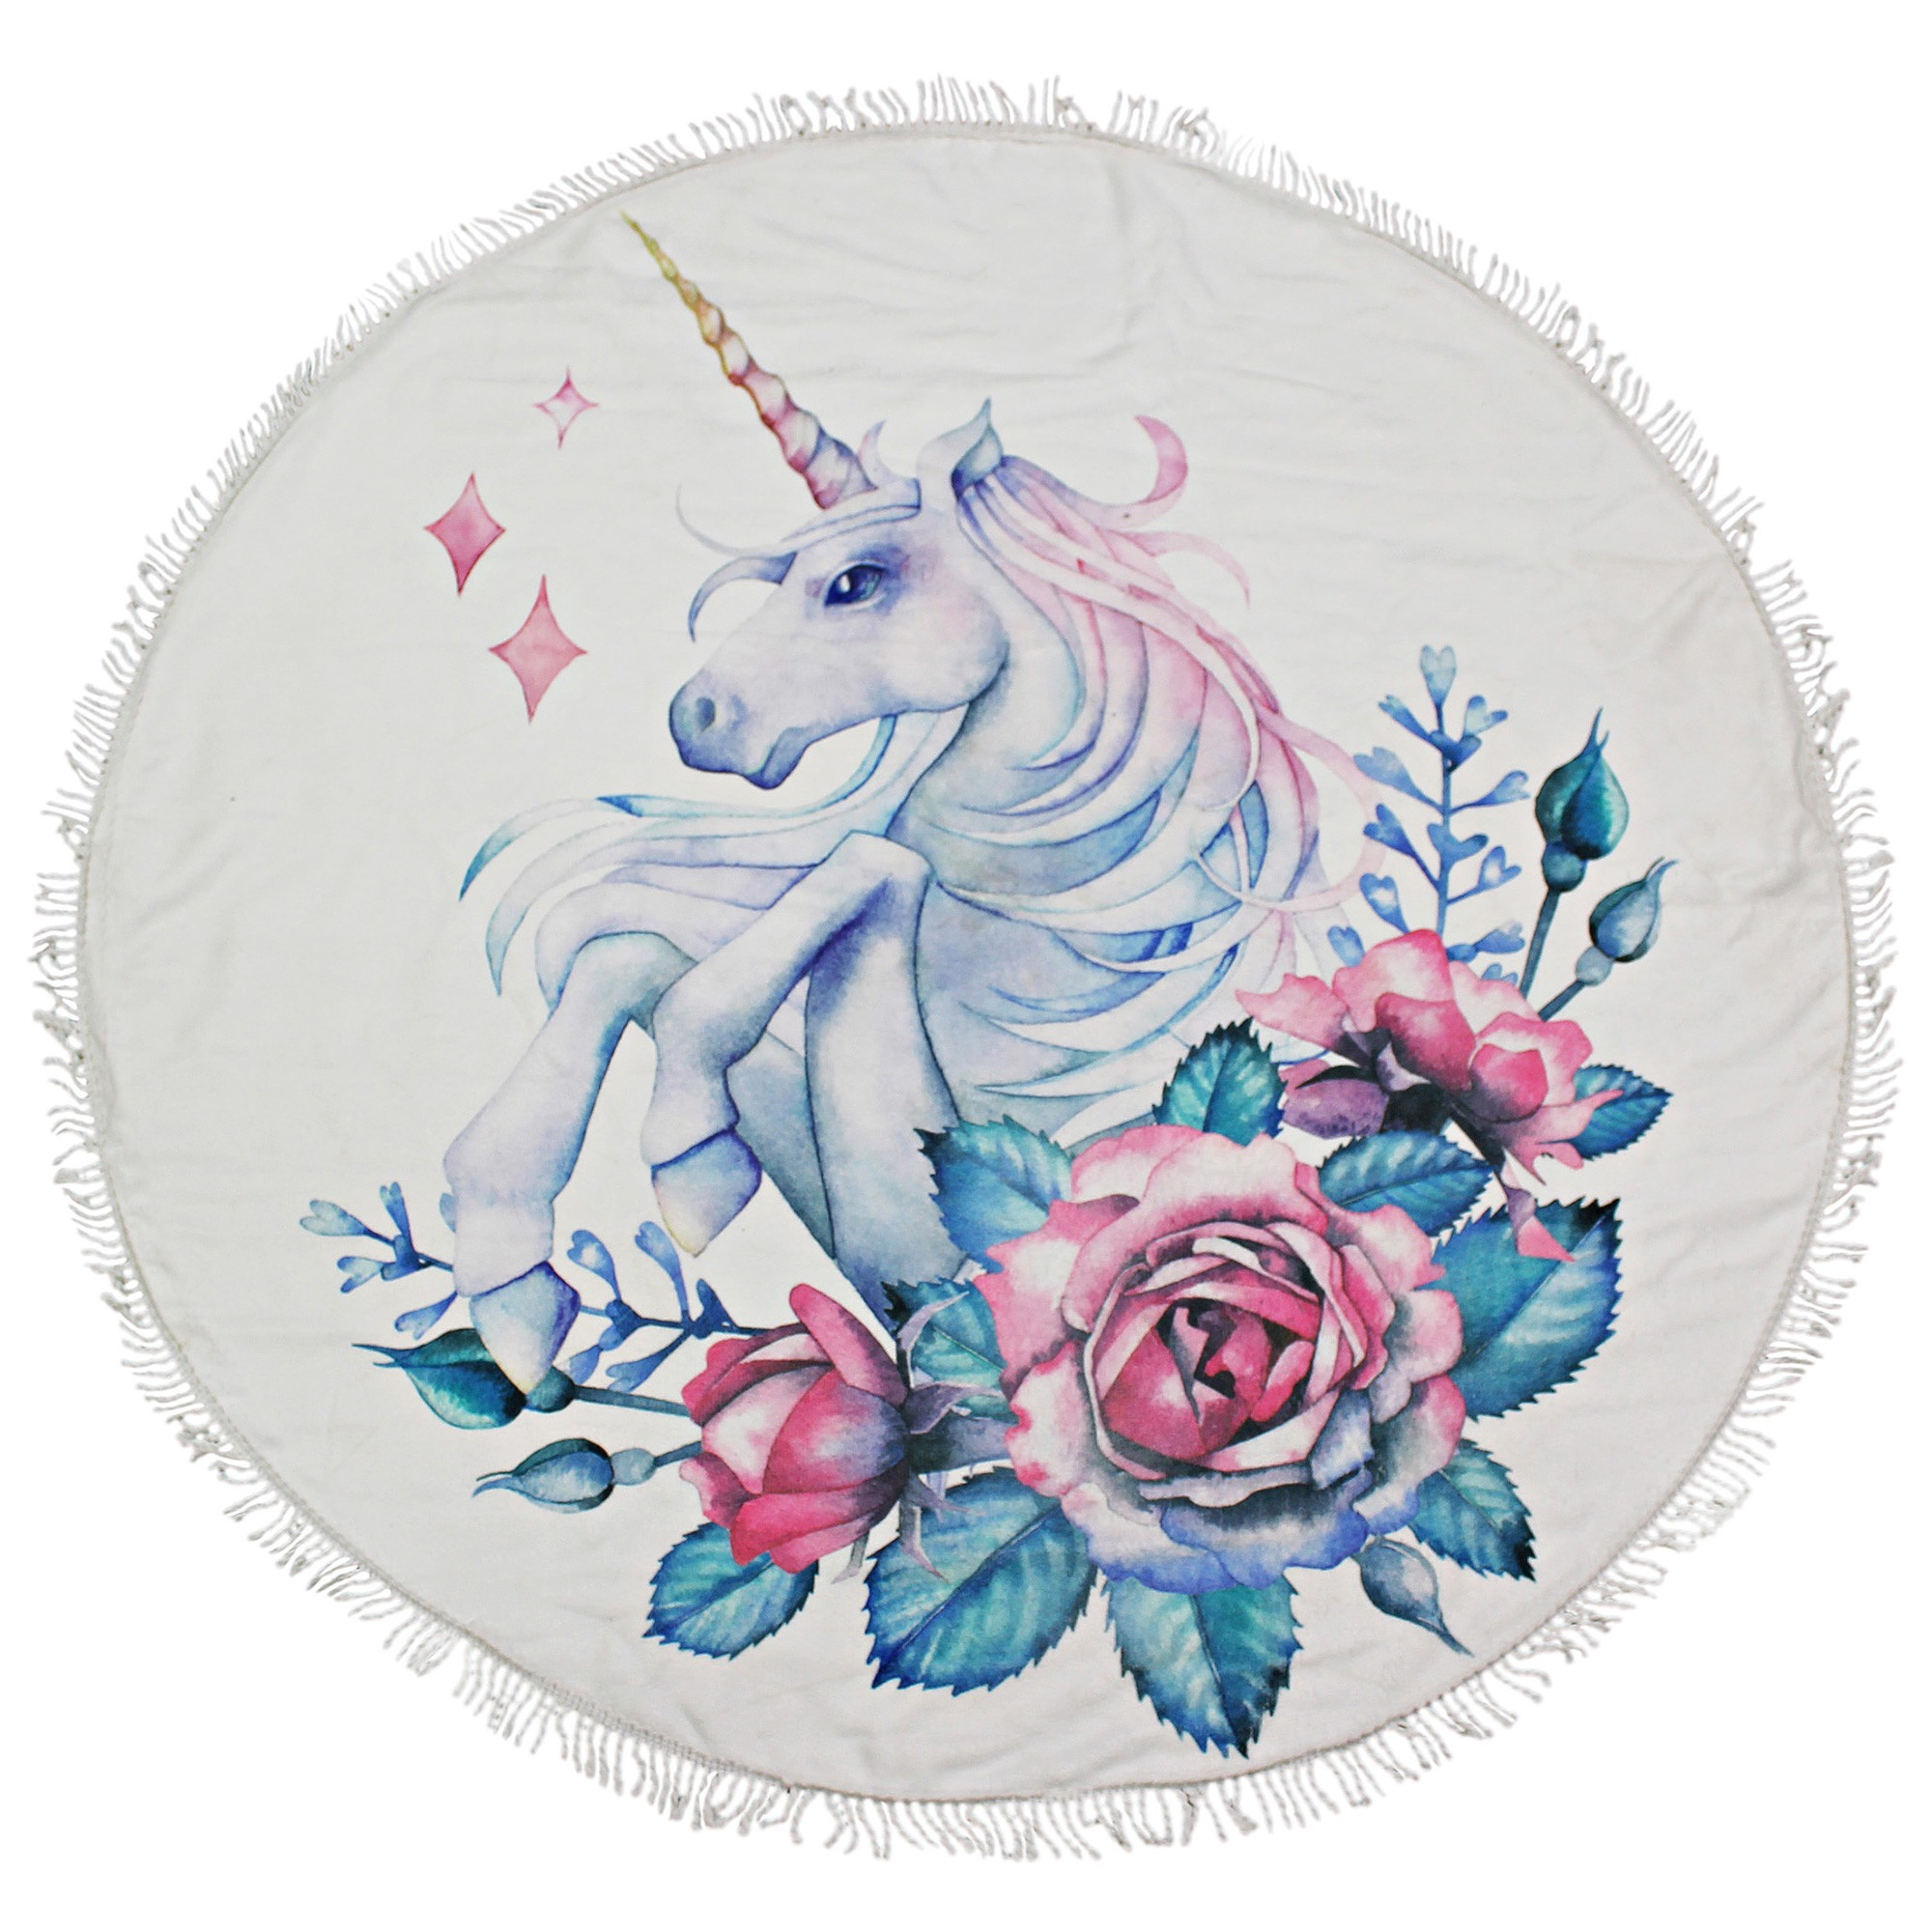 Kommotion Microfibre Kids Round Beach Towel, Unicorn & Rose, 100cm